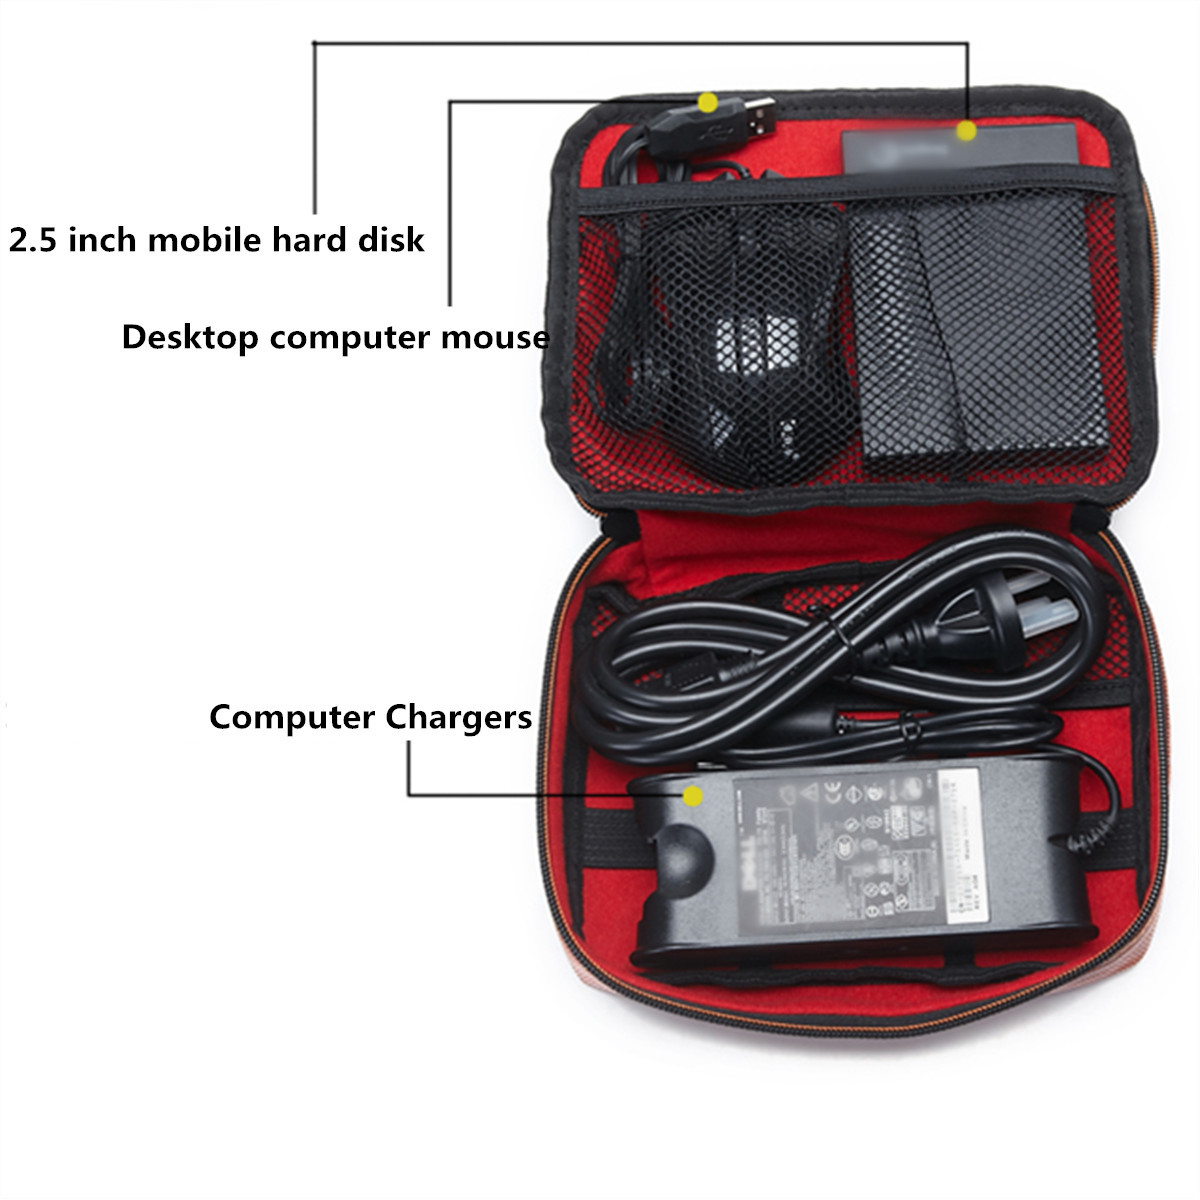 High Capacity Power Bank Charger Cable Earphone Storage Bag